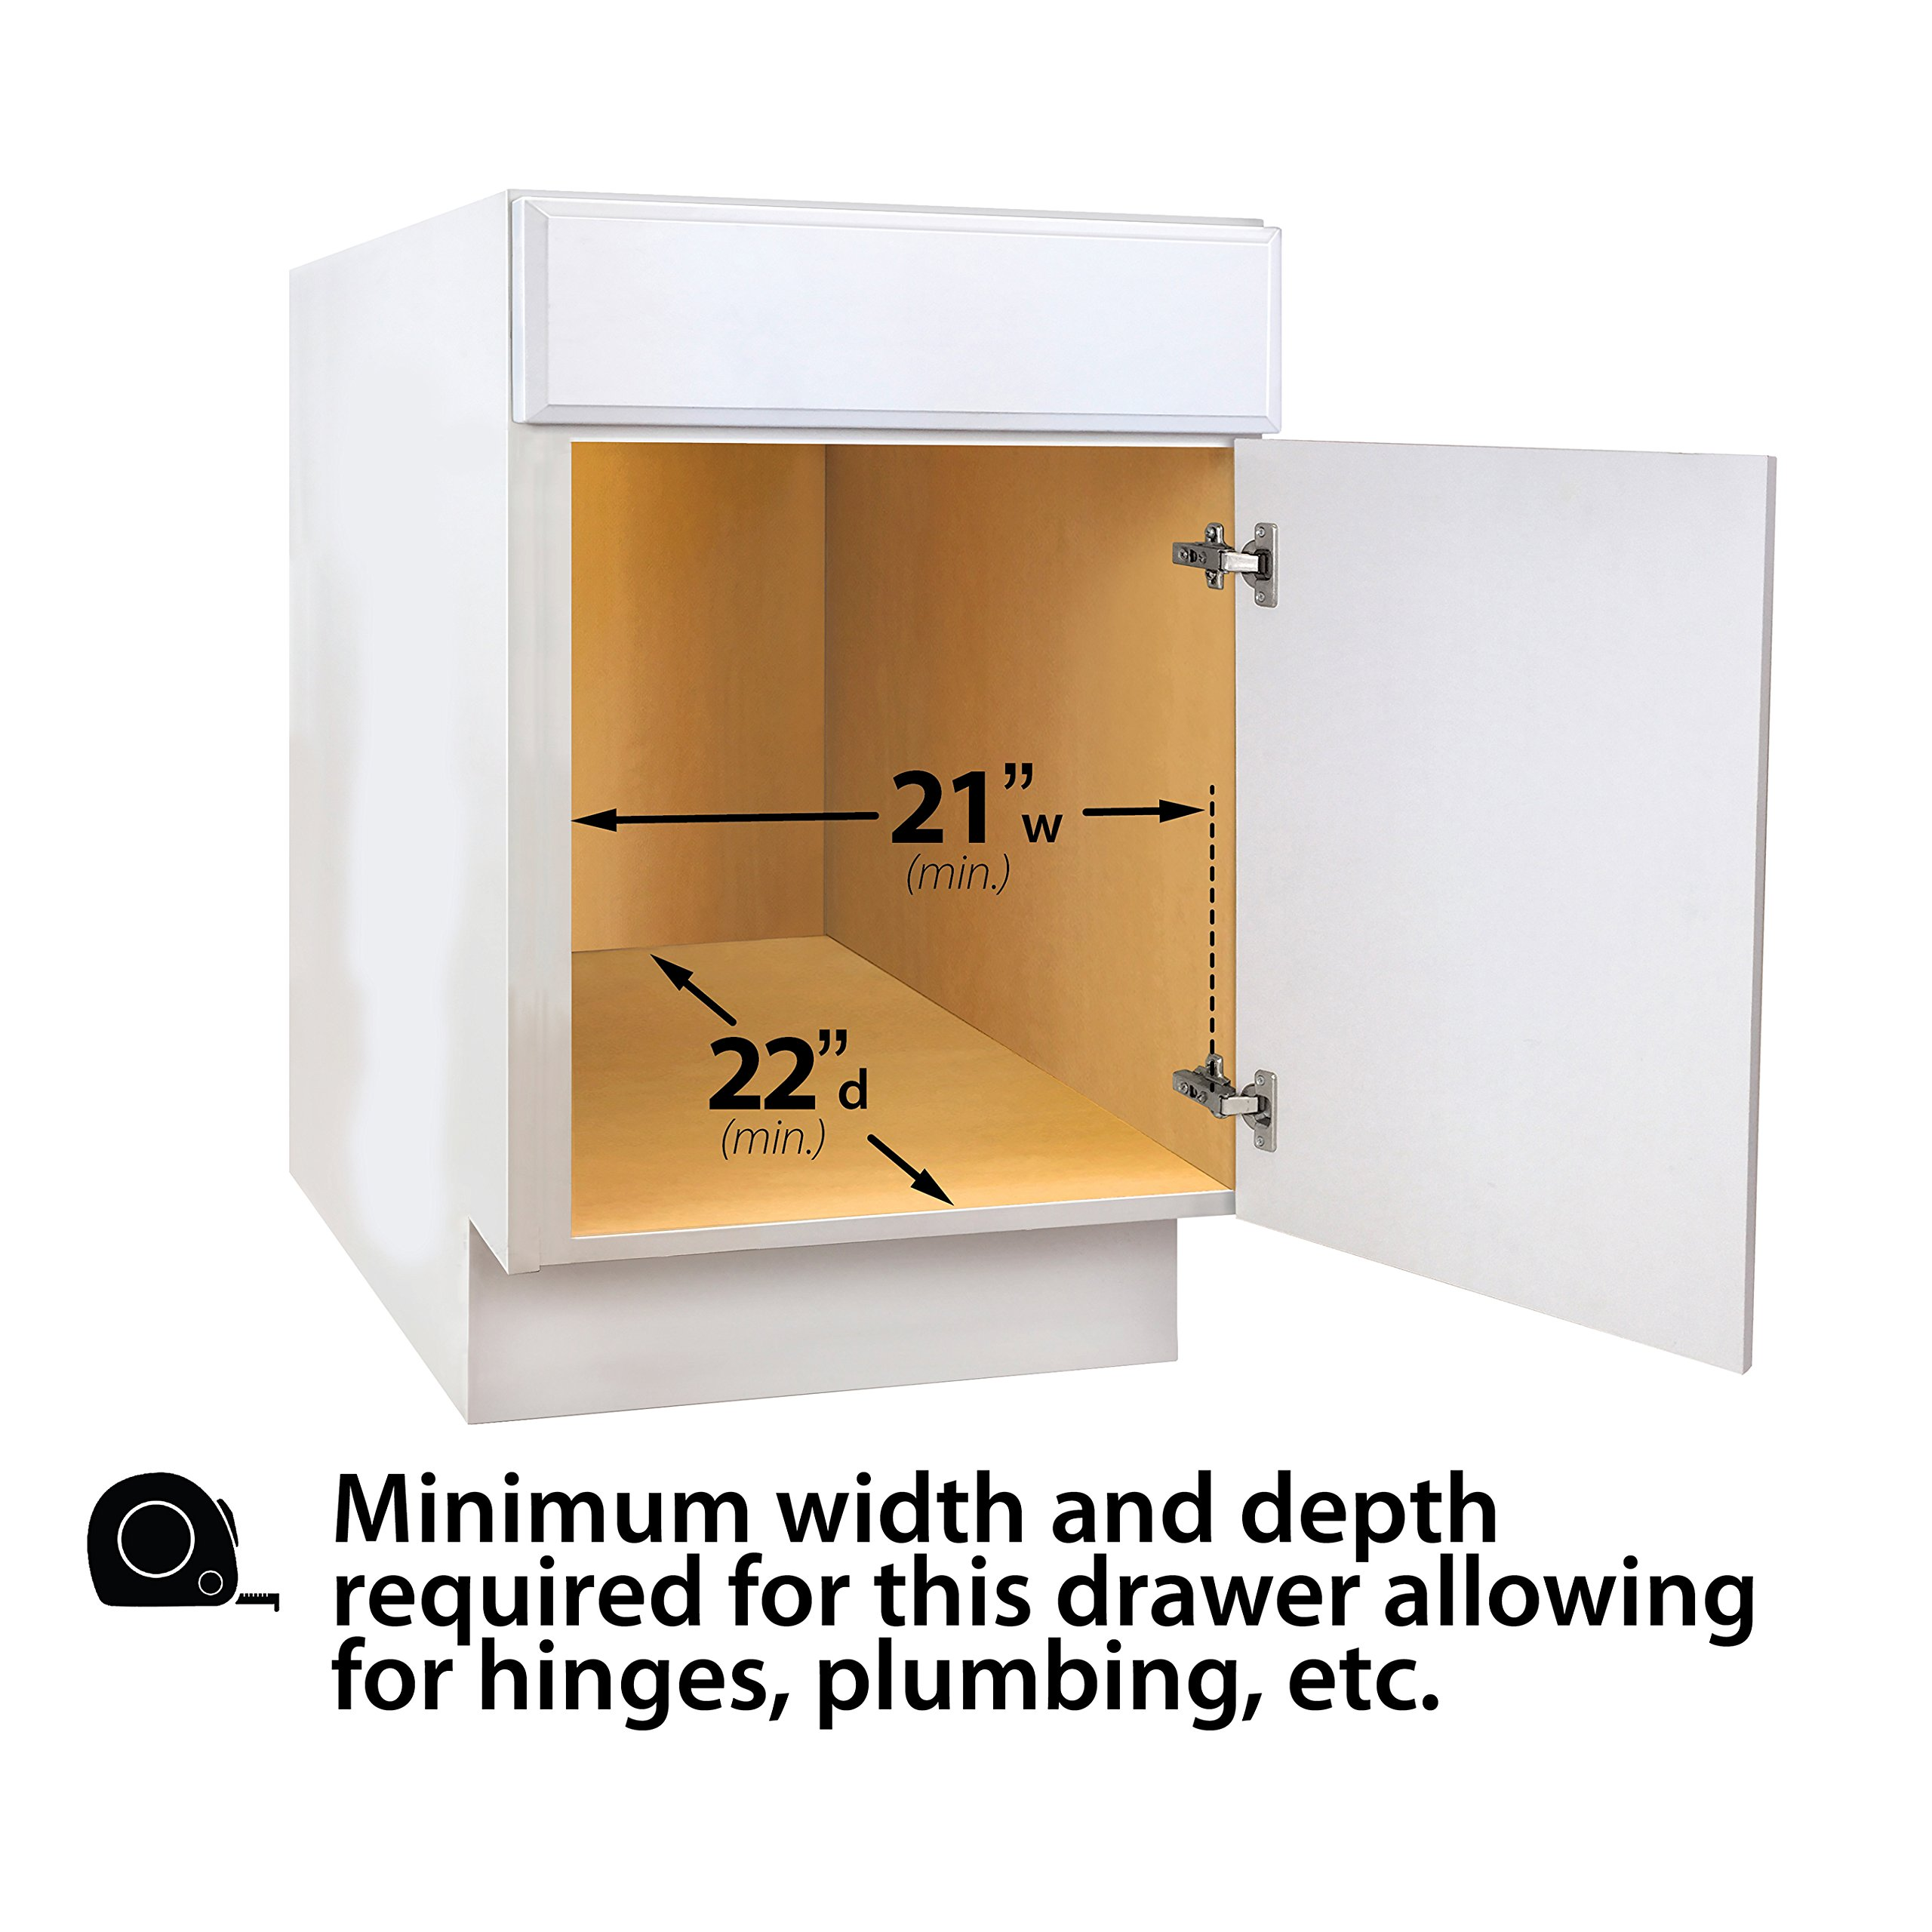 Lynk Professional Slide Out Cabinet Organizer - Pull Out Under Cabinet Sliding Shelf by Lynk (Image #3)